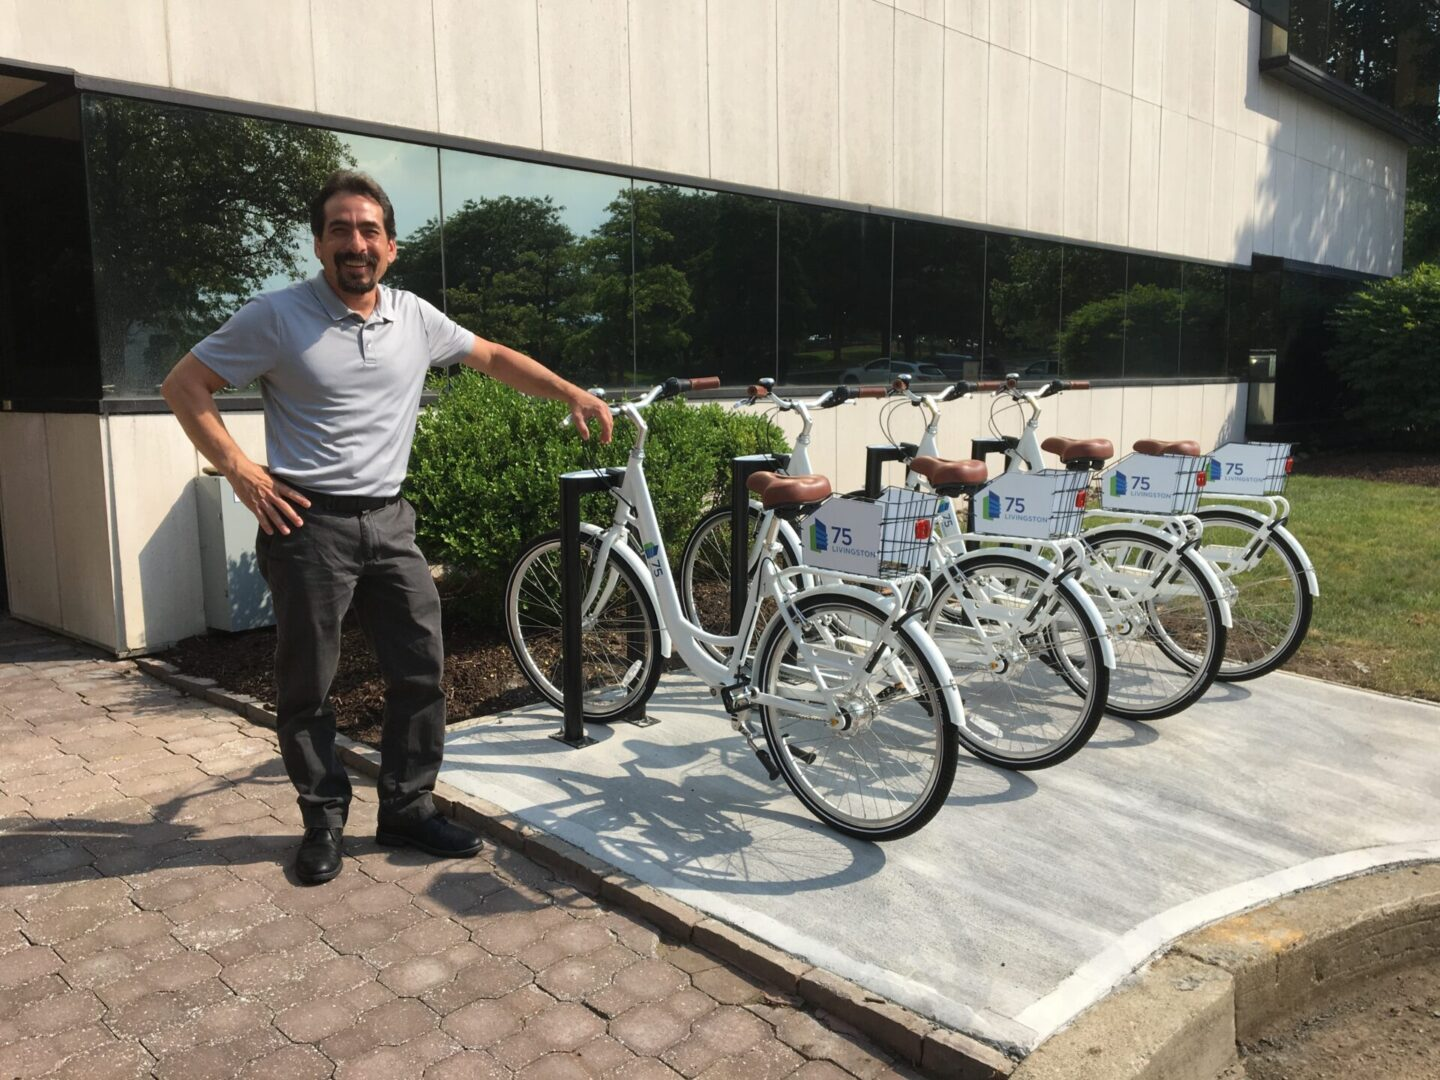 A man smiling in beside a set of bicycles